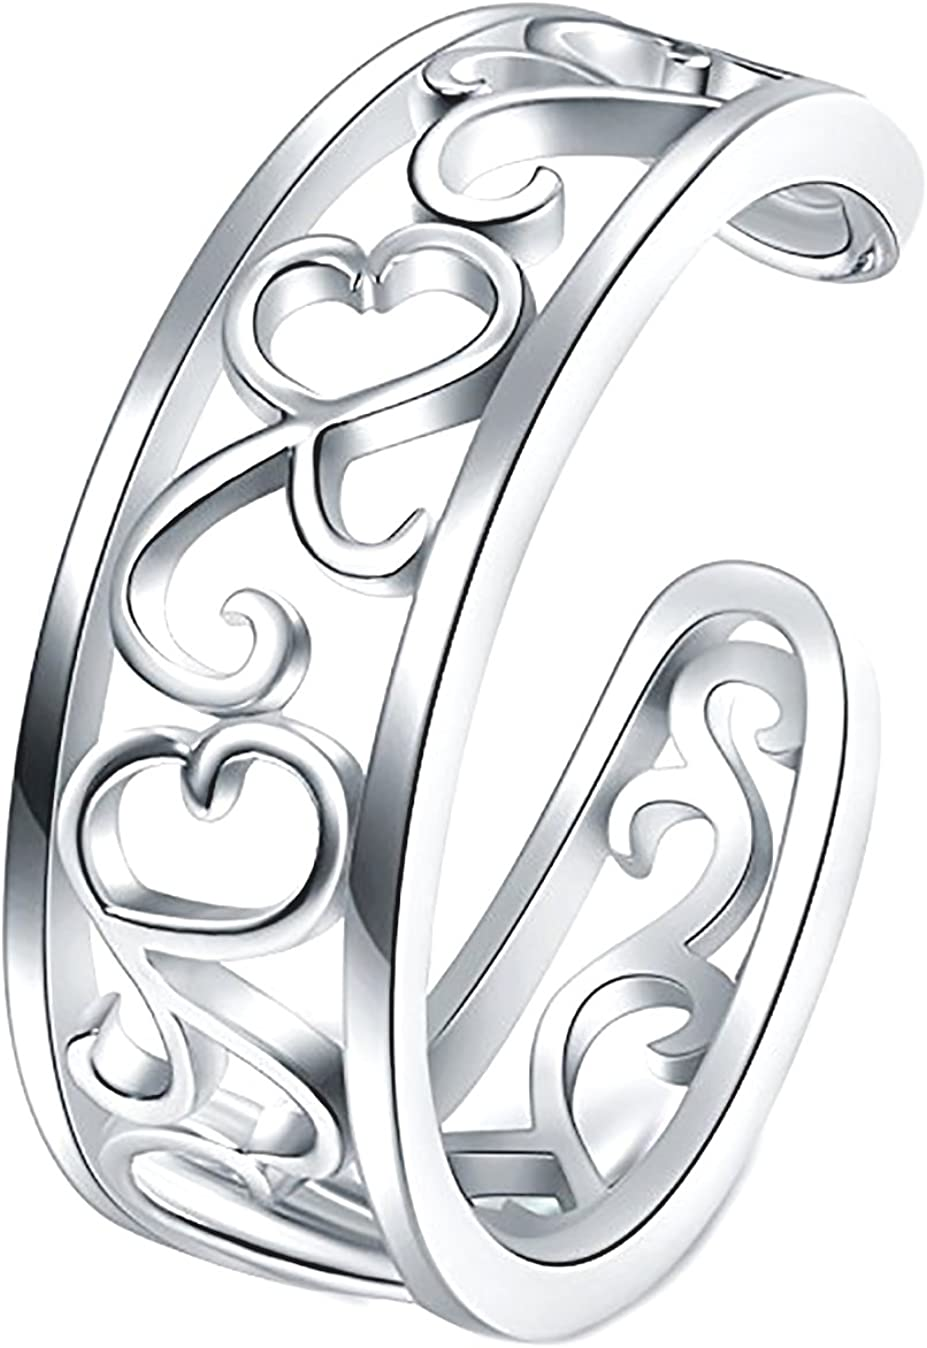 USA Seller Flowers Toe Ring Sterling Silver 925 Best Price Jewelry Gift